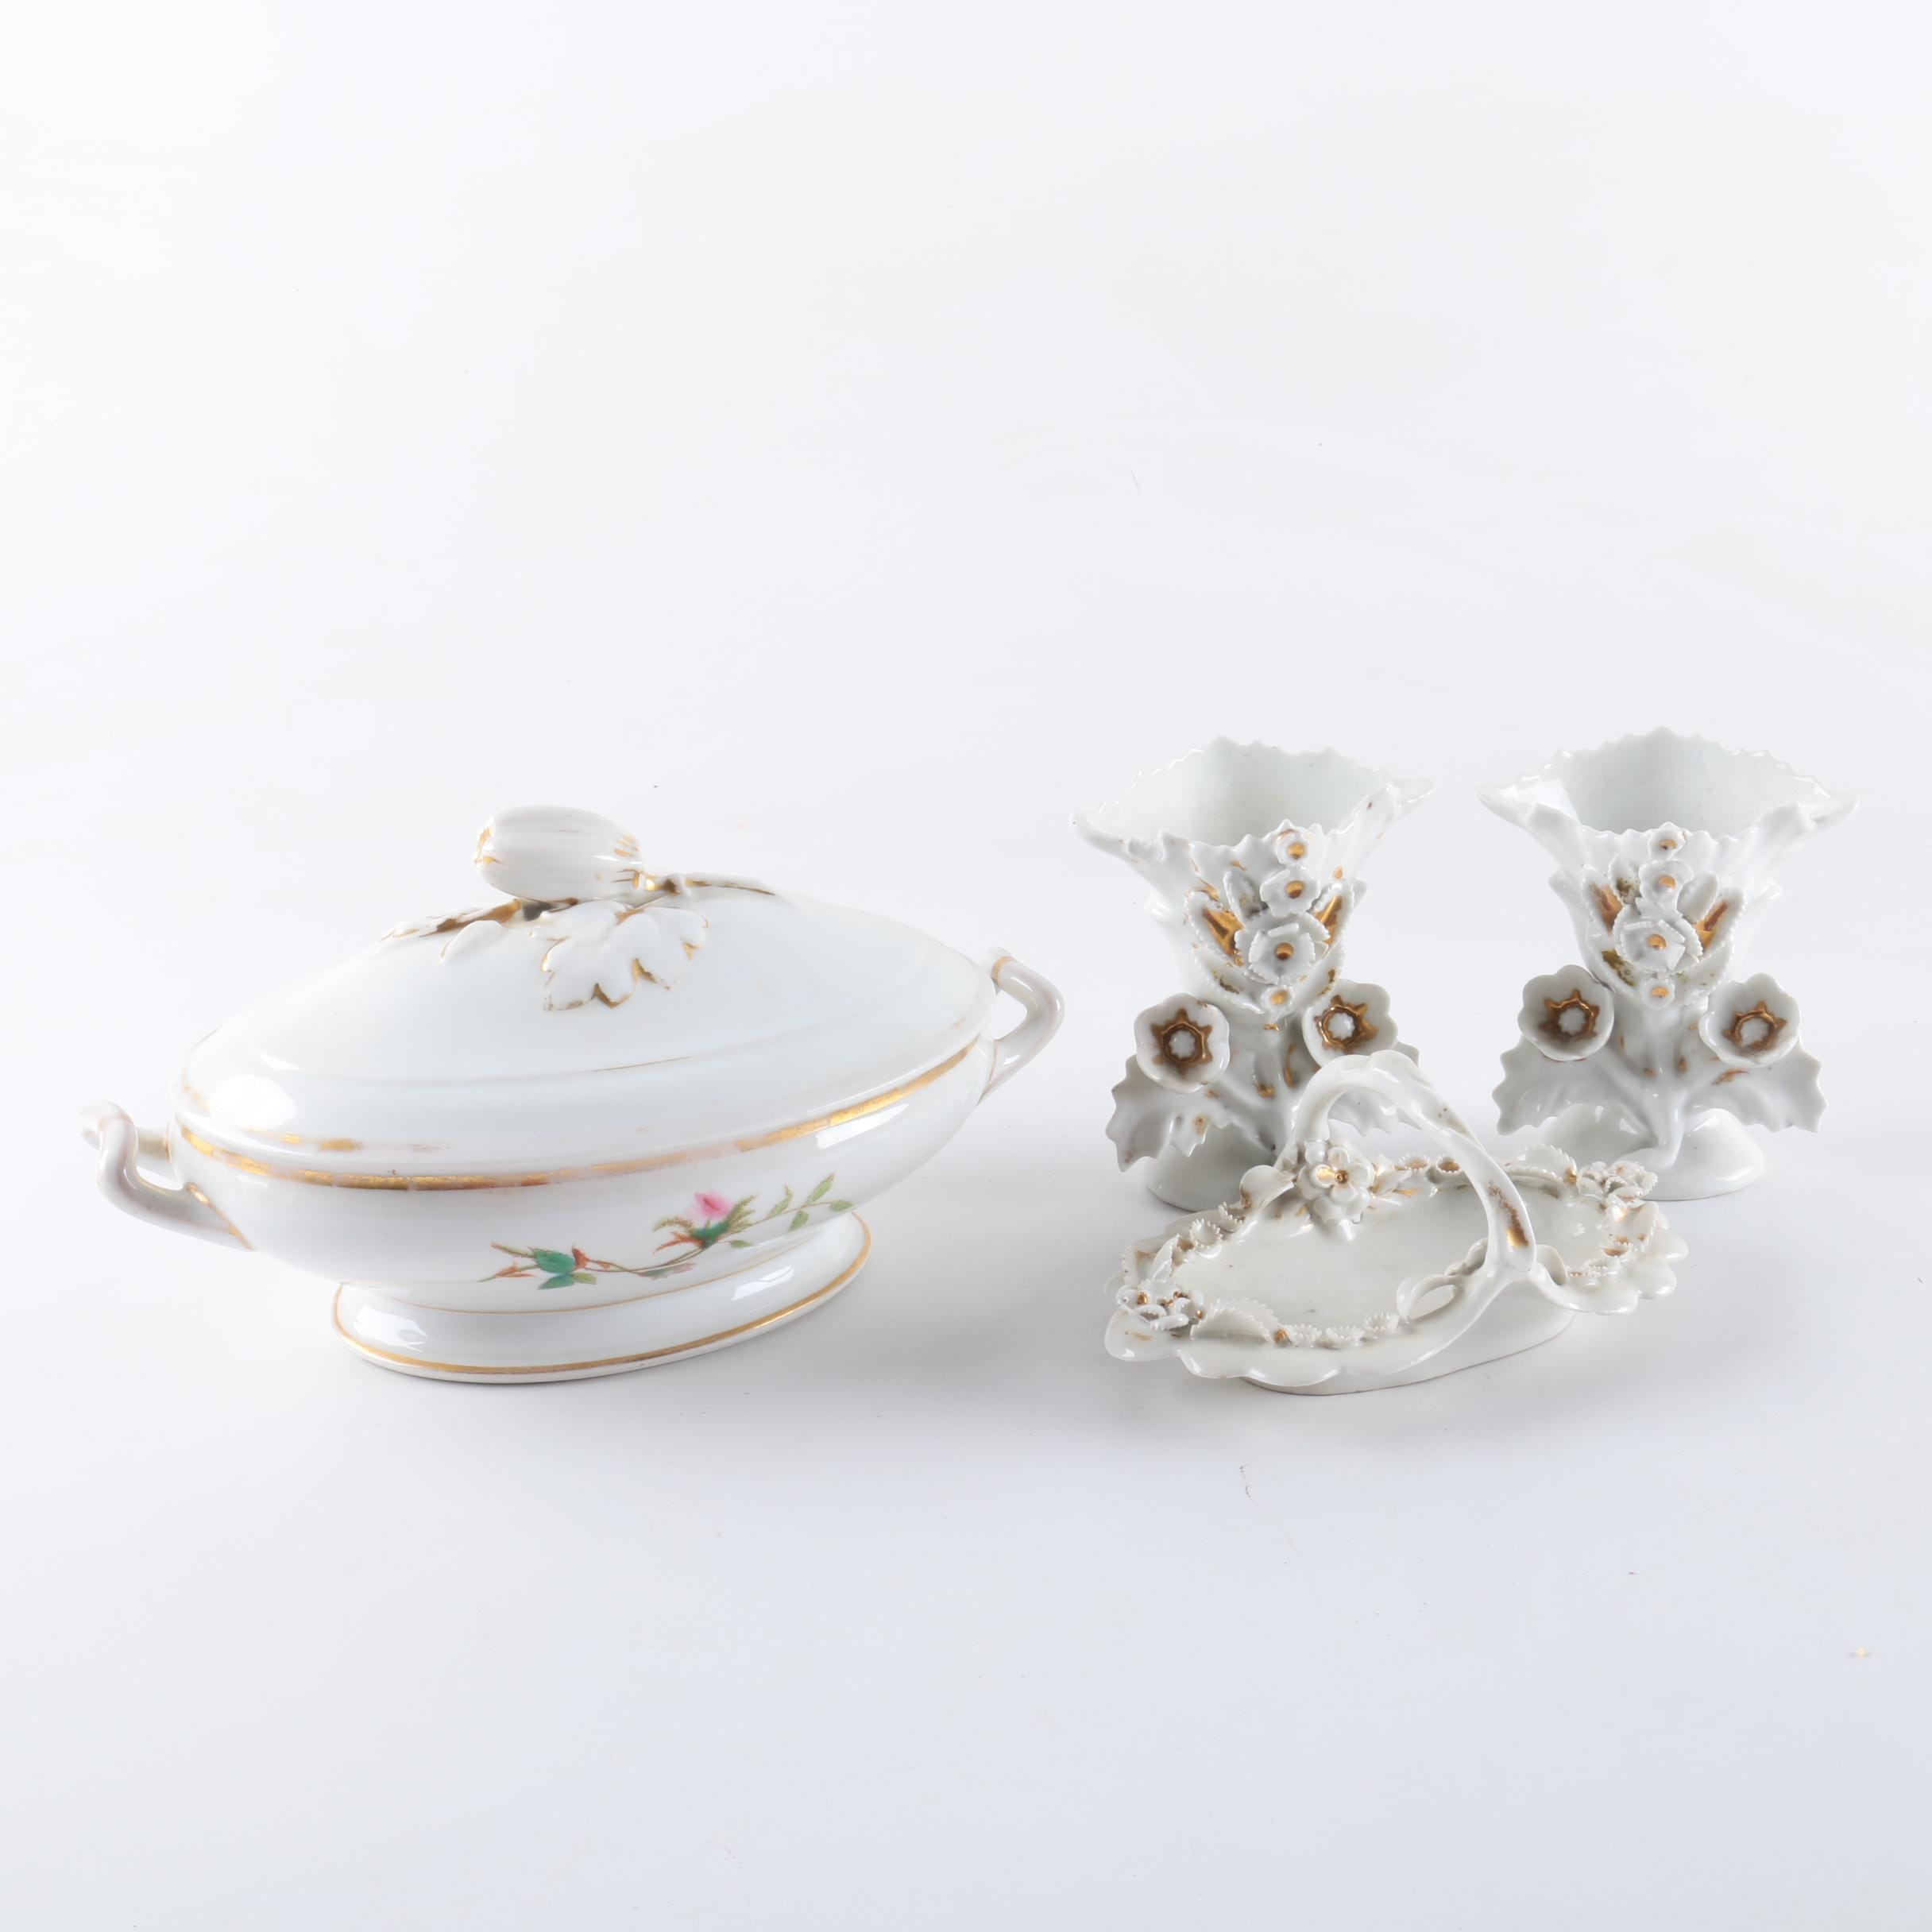 Porcelain Dishes and Vases with Goldtone Trim